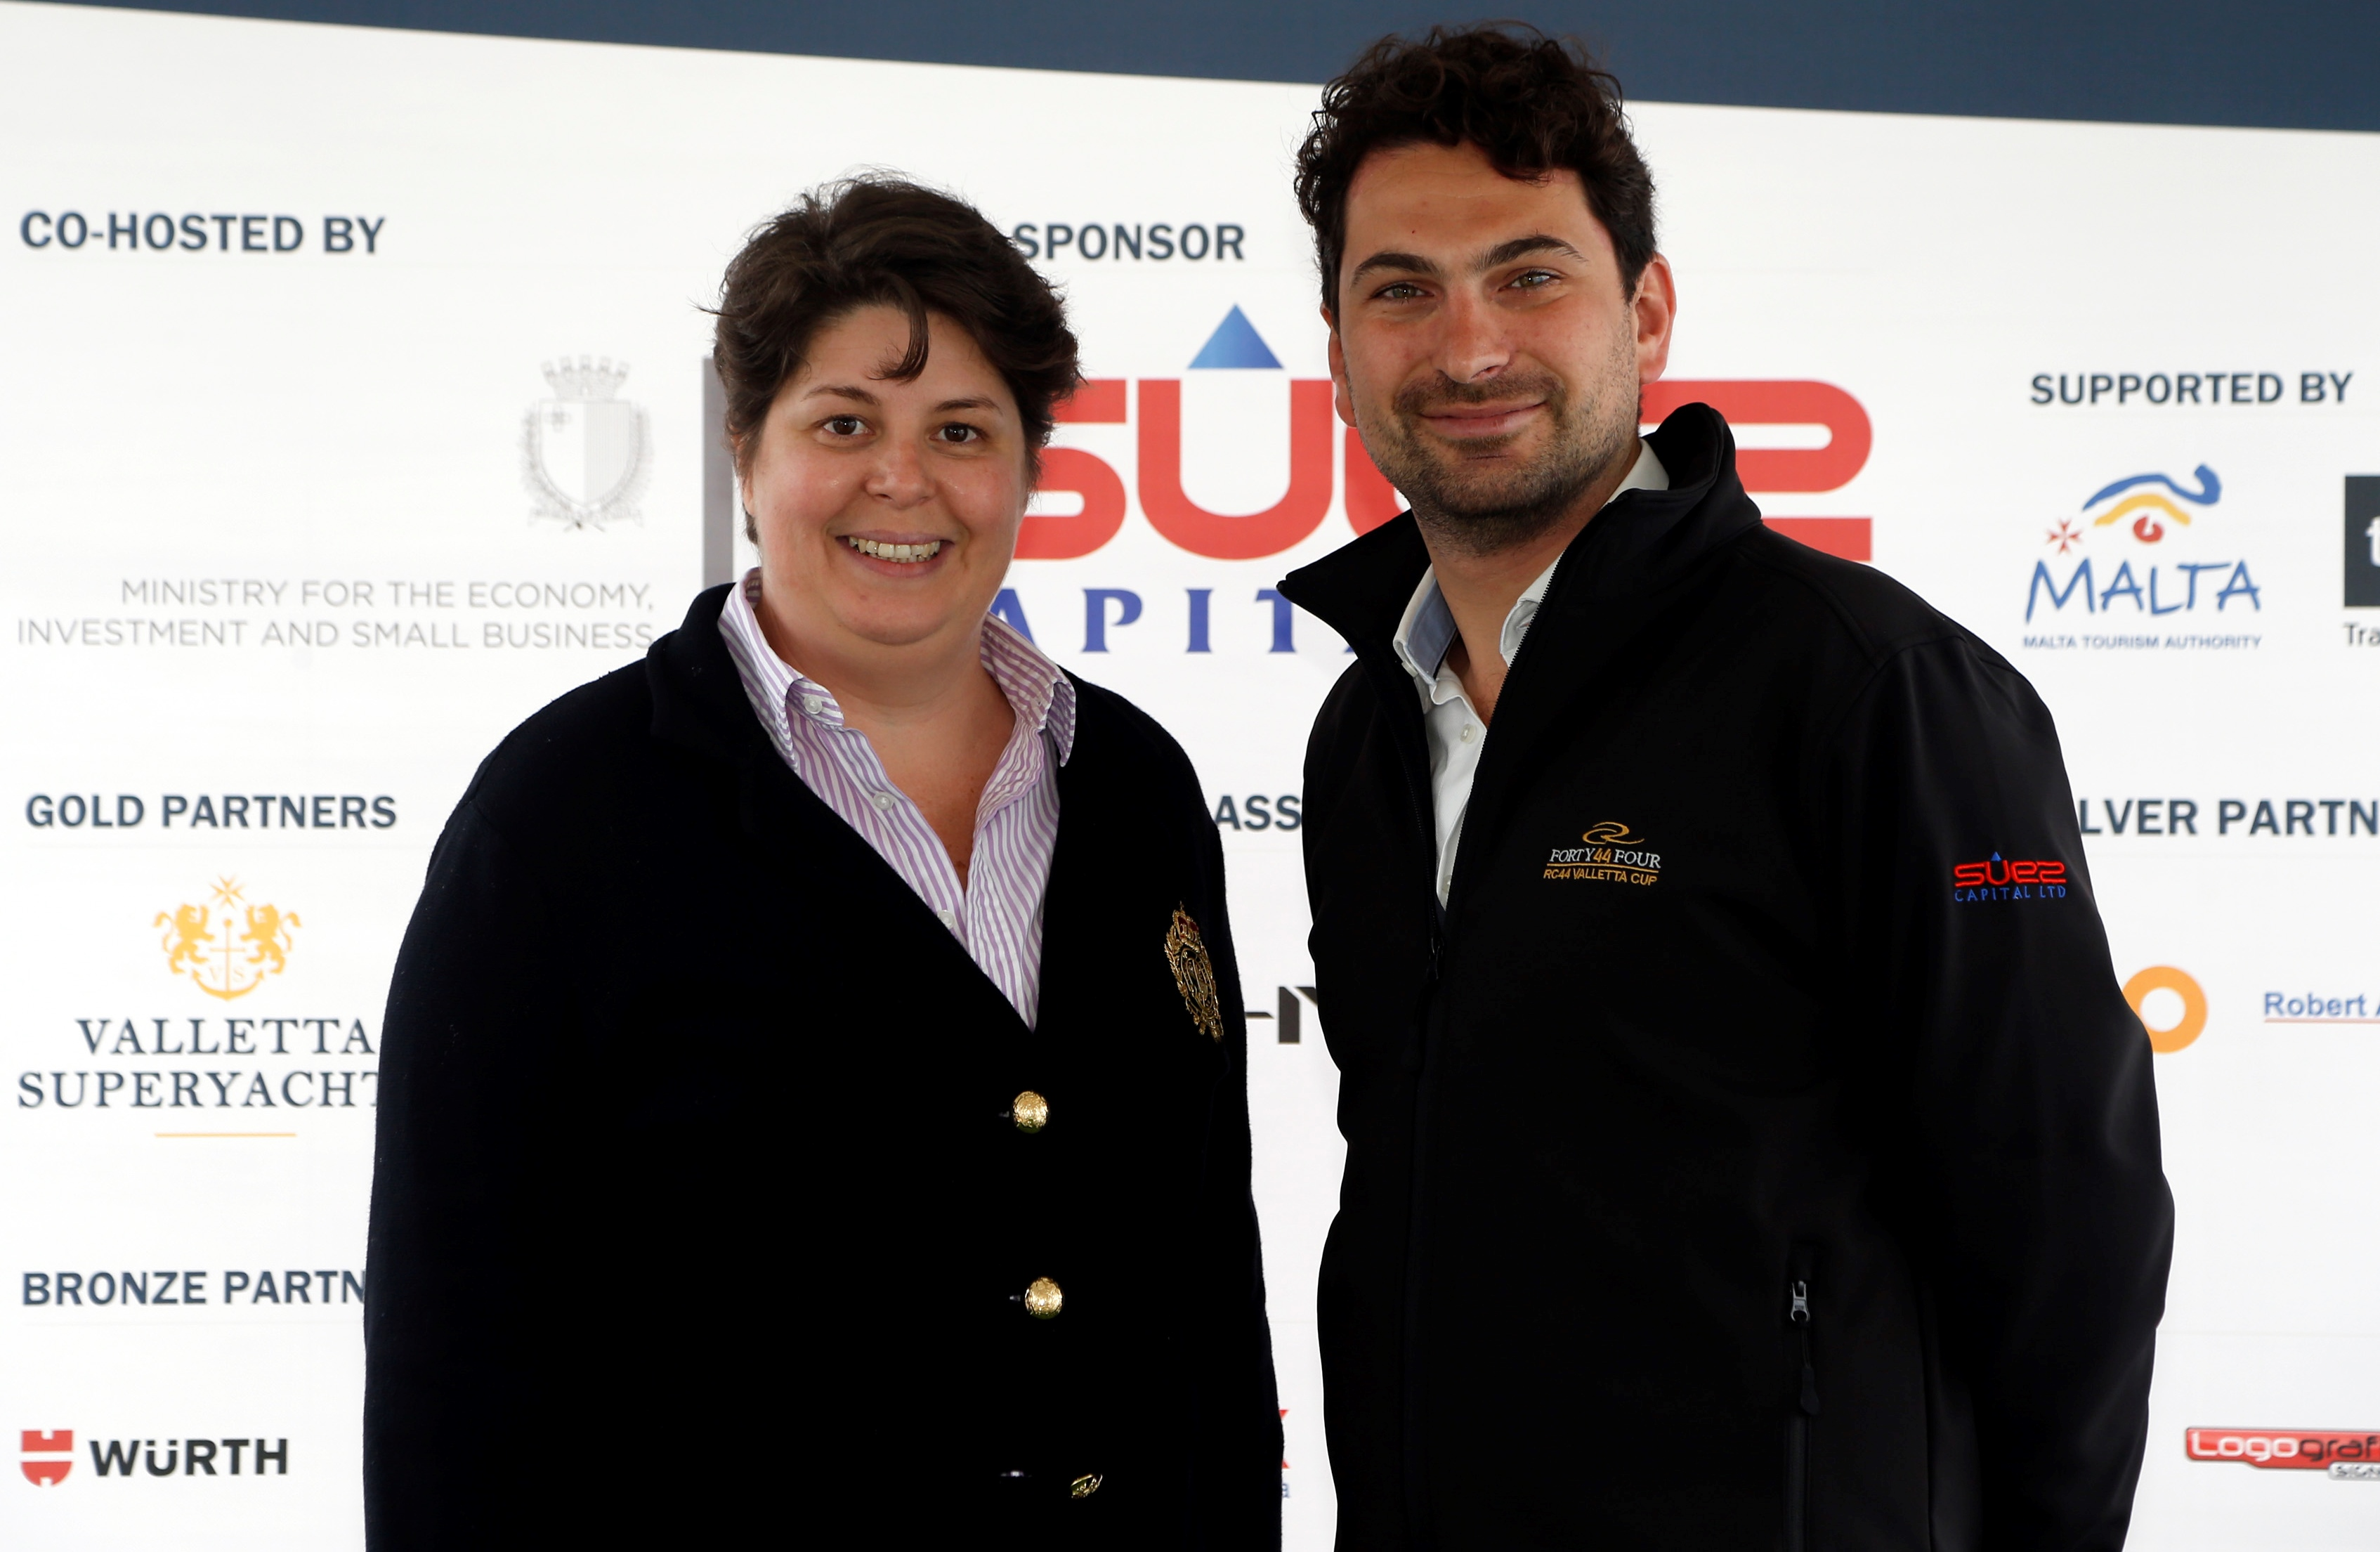 Clare Cassar won a 5 day pass to the RC 44 Valletta Cup thanks to Yachting Events Ltd